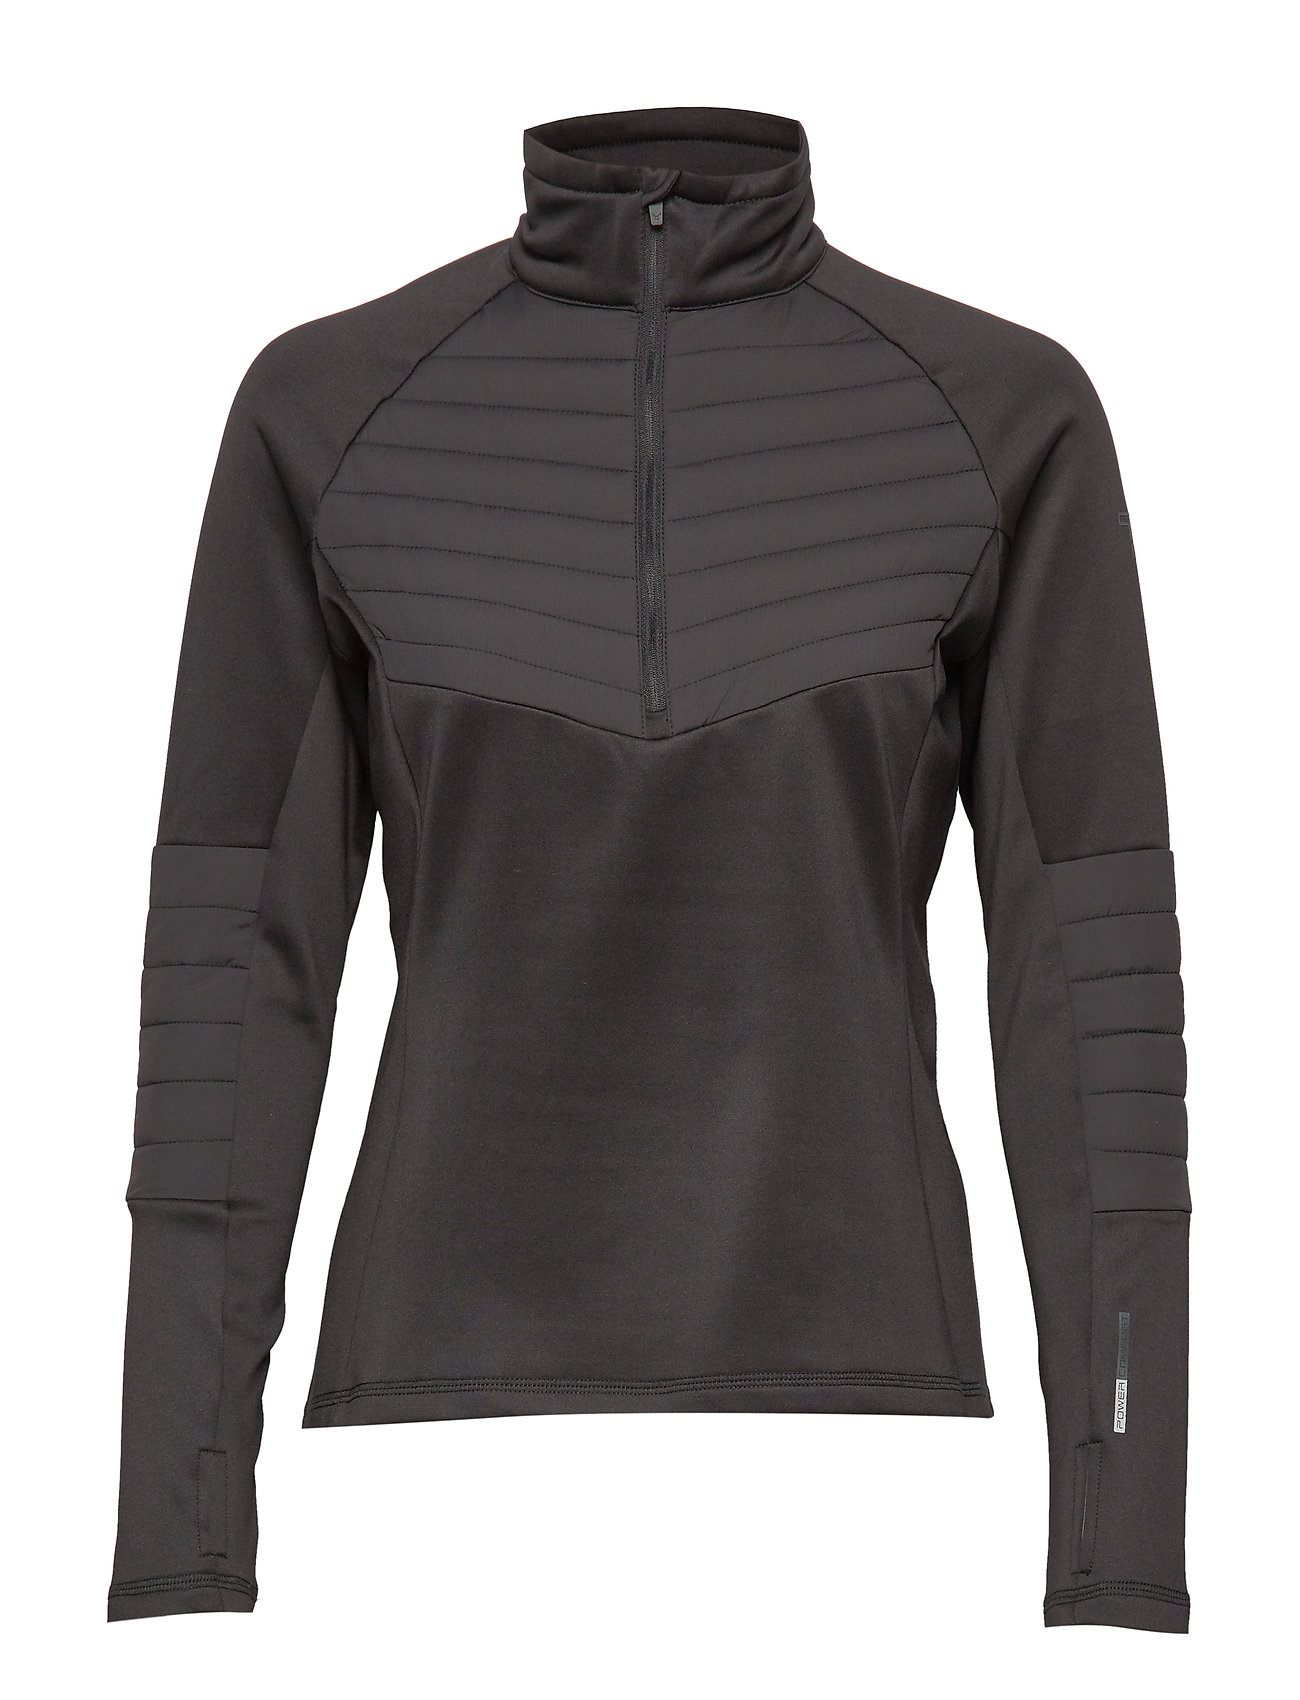 Image of Therma Top Base Layer Tops Grå Tenson (3266176919)